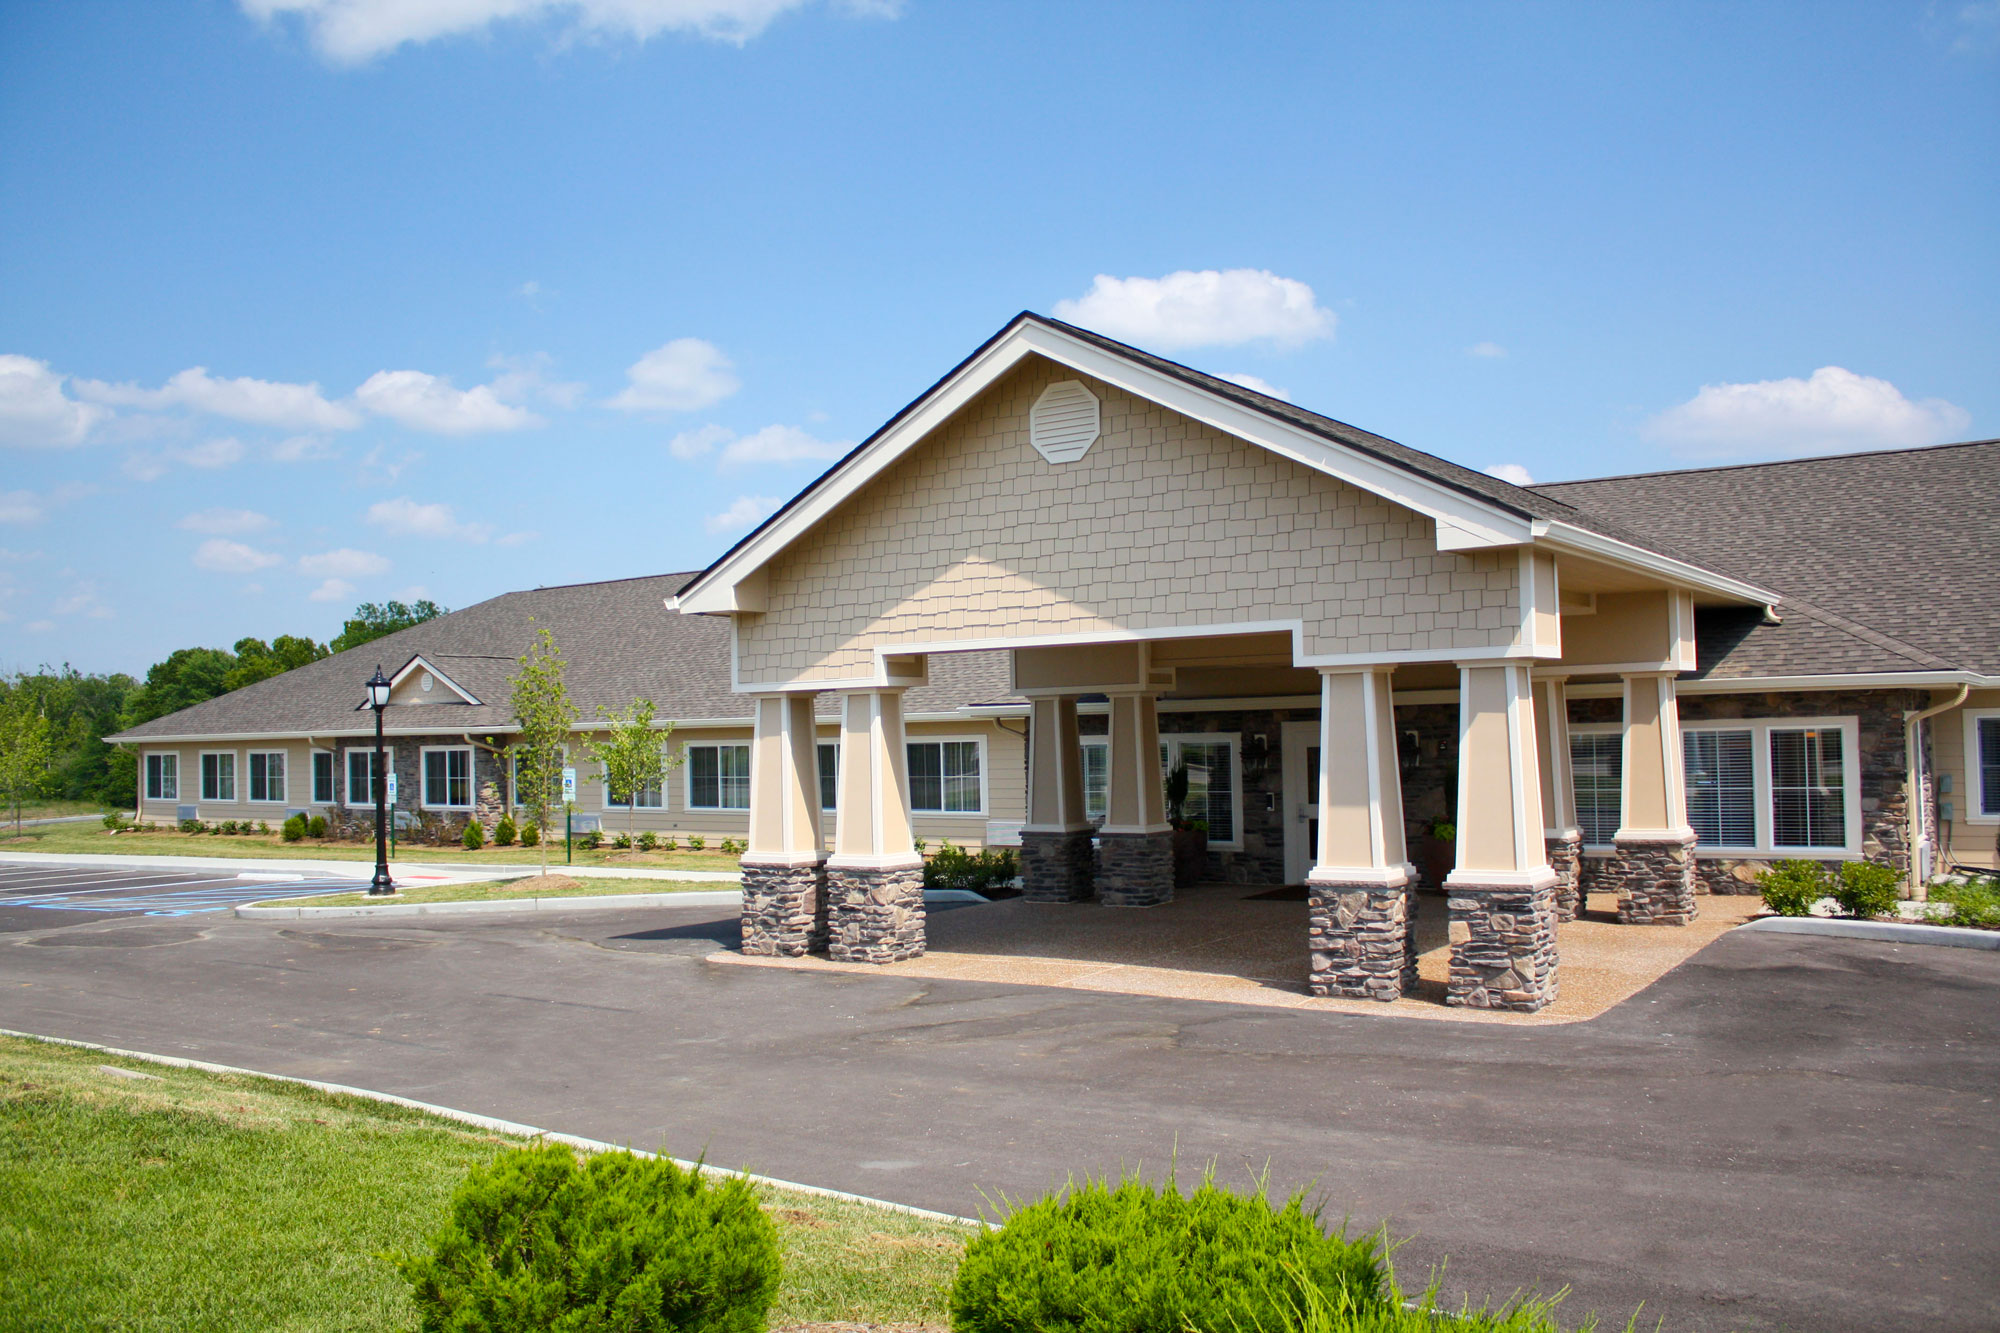 BaratHaven is a memory care facility constructed by PARIC Corp. located in St. Louis MO.